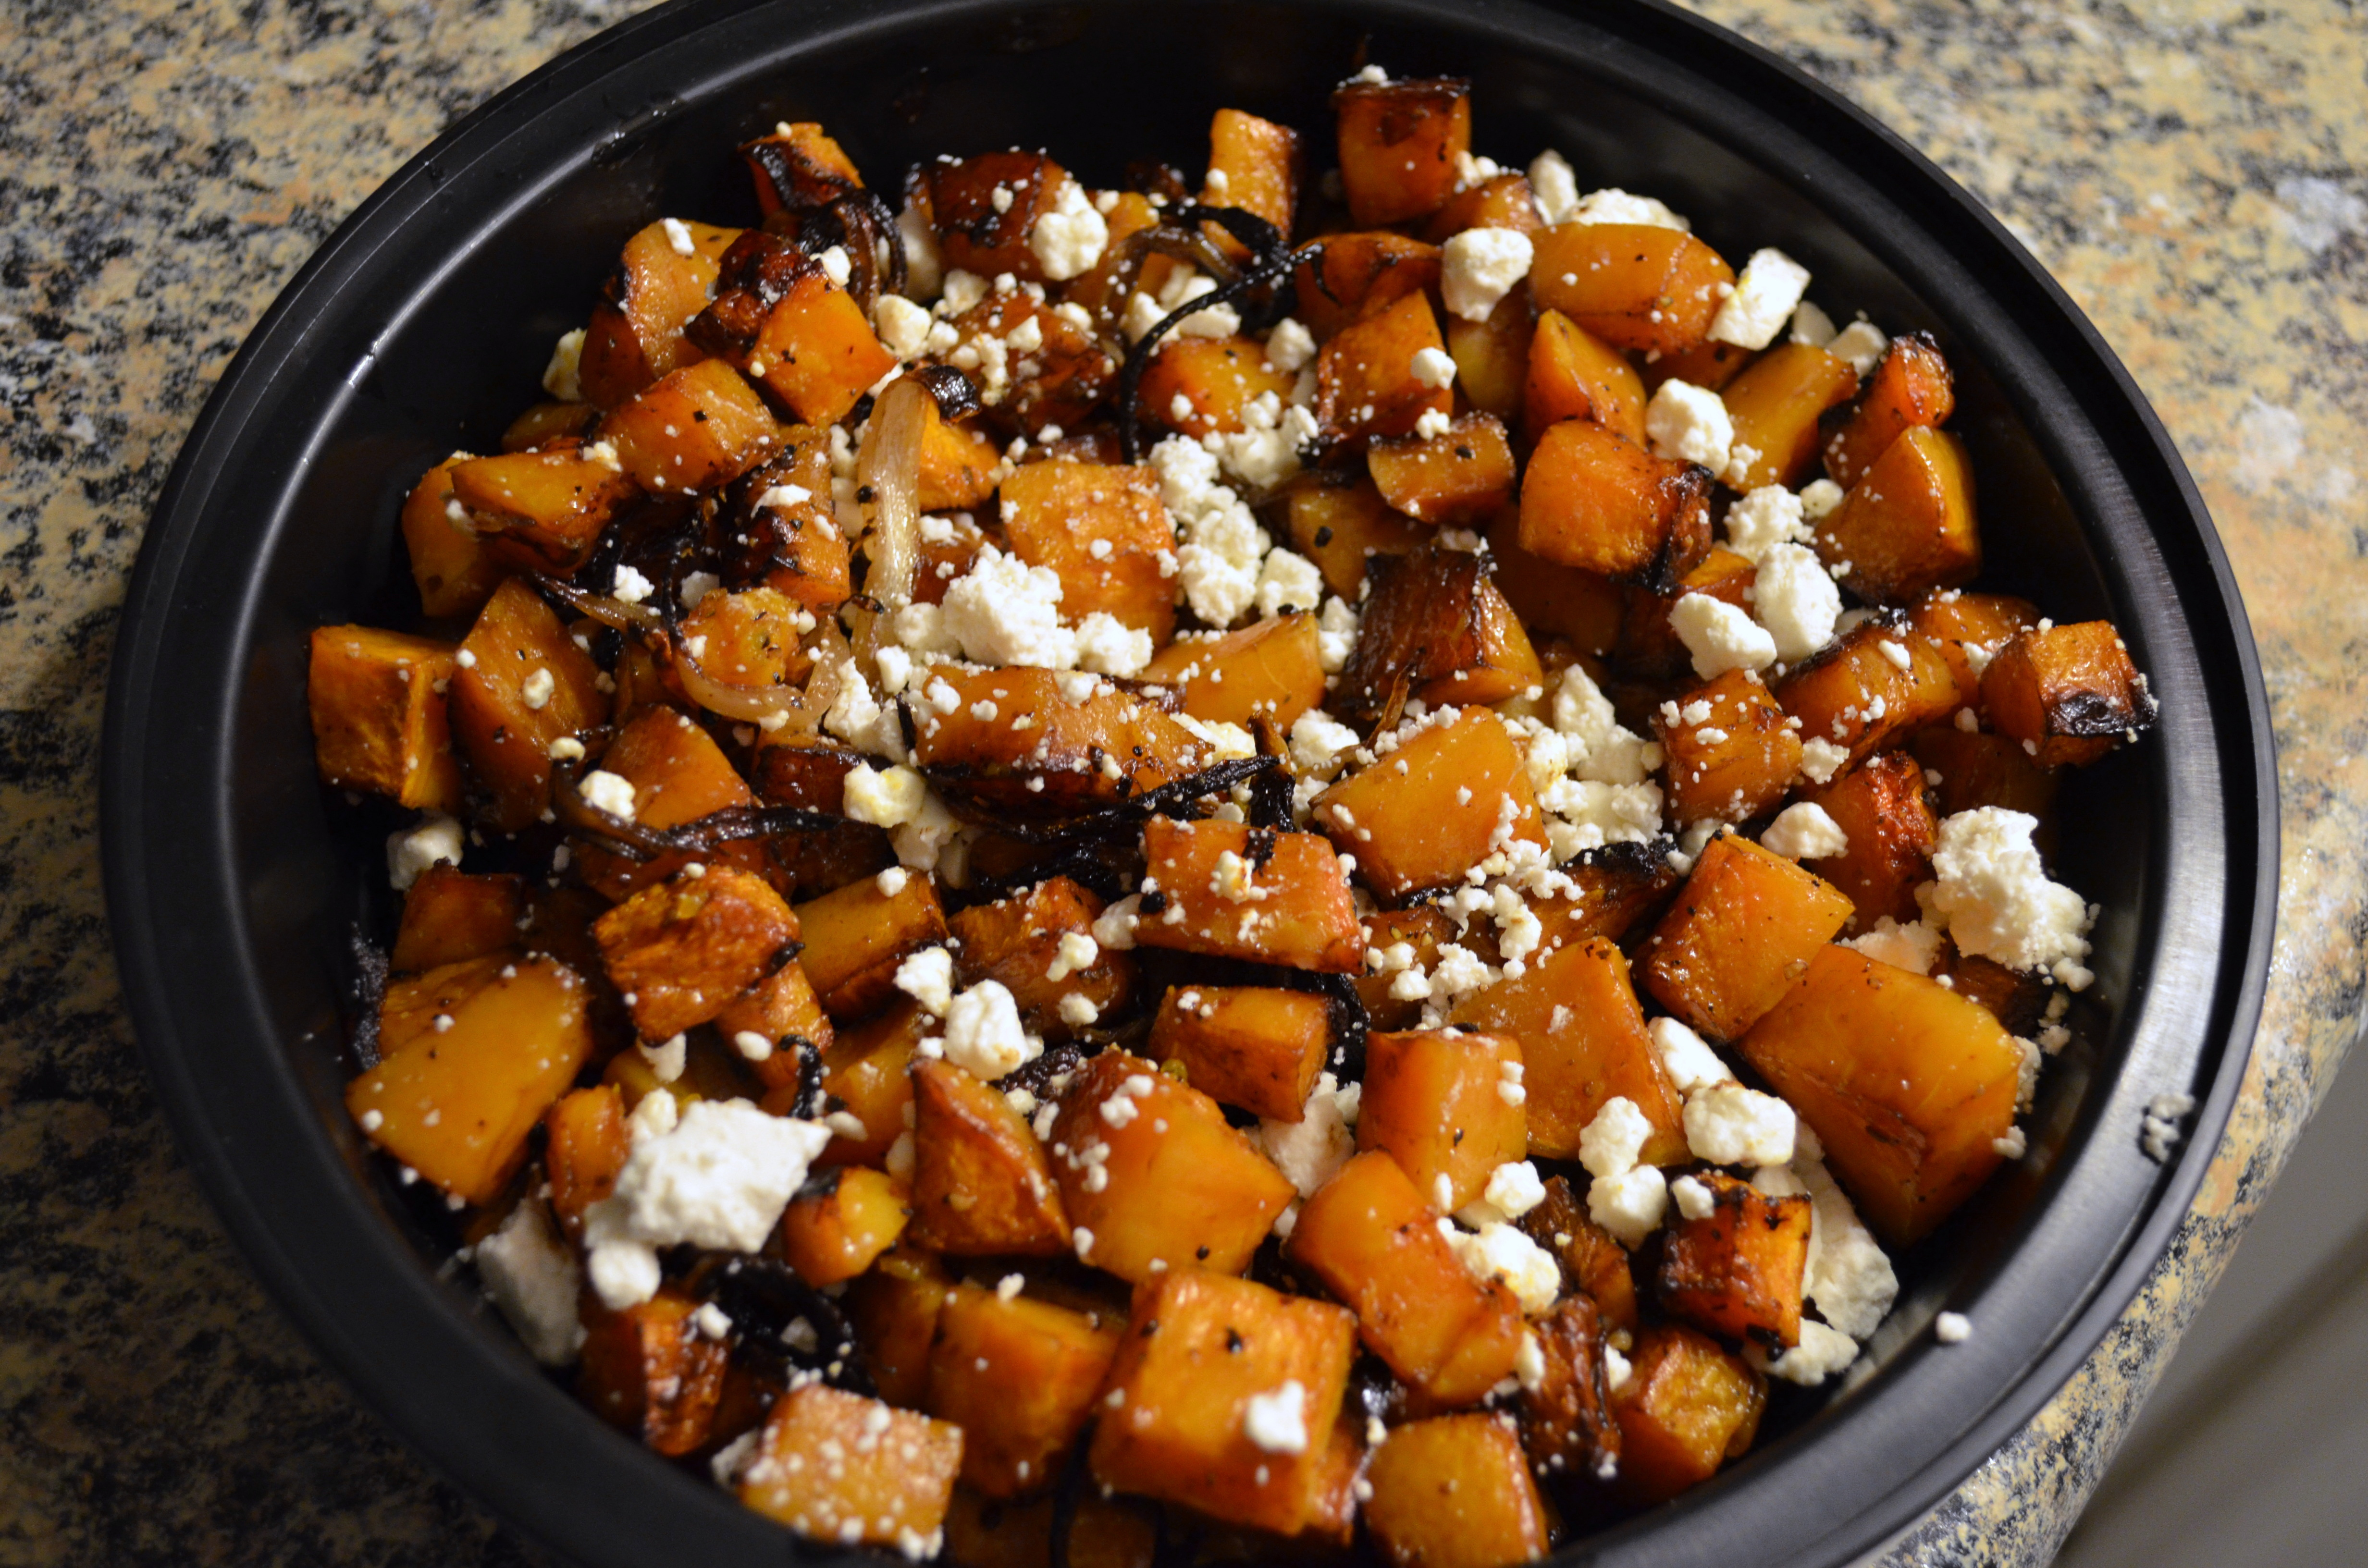 Roasted Balsamic Butternut Squash with Goat Cheese